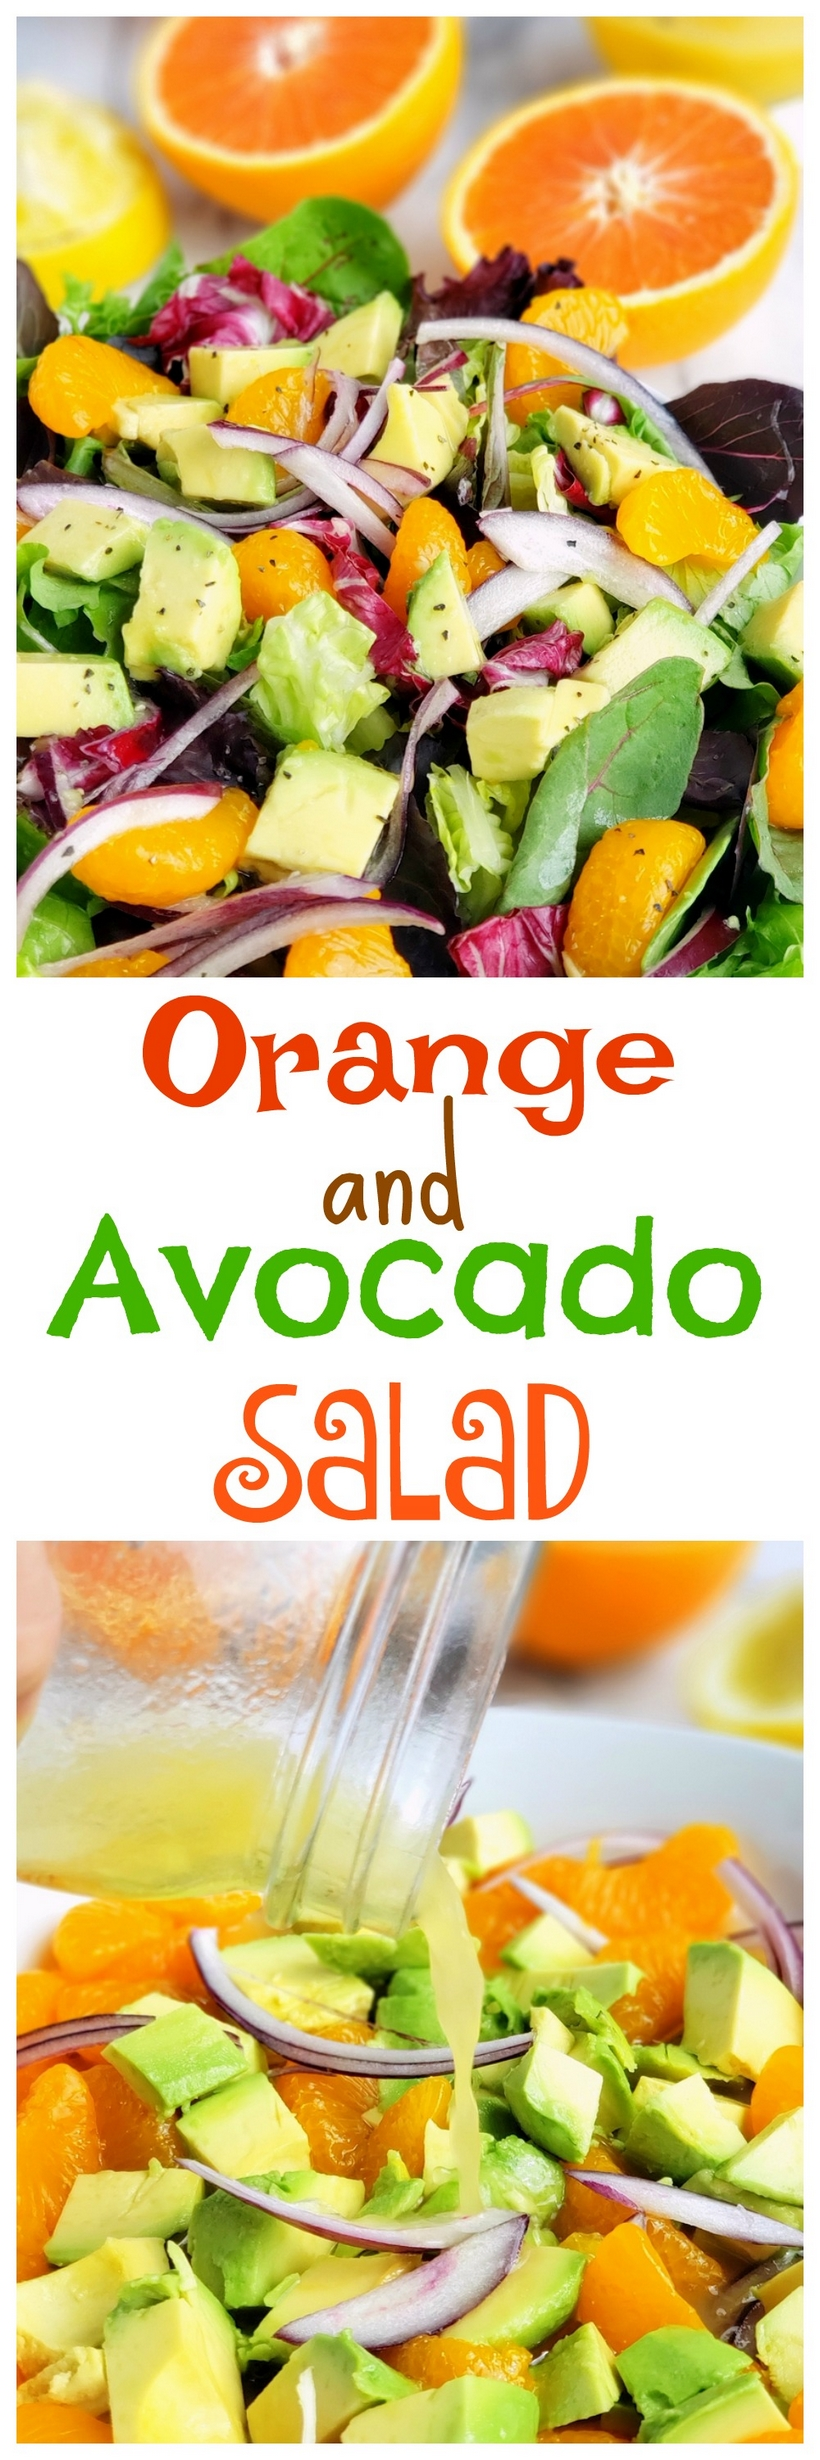 This refreshing Orange and Avocado Salad makes a colorful and flavorful lunch or dinner meal salad. I especially love this salad served as a side dish with a Mexican-inspired meal. #avocadosalad #citrussalad via @cmpollak1